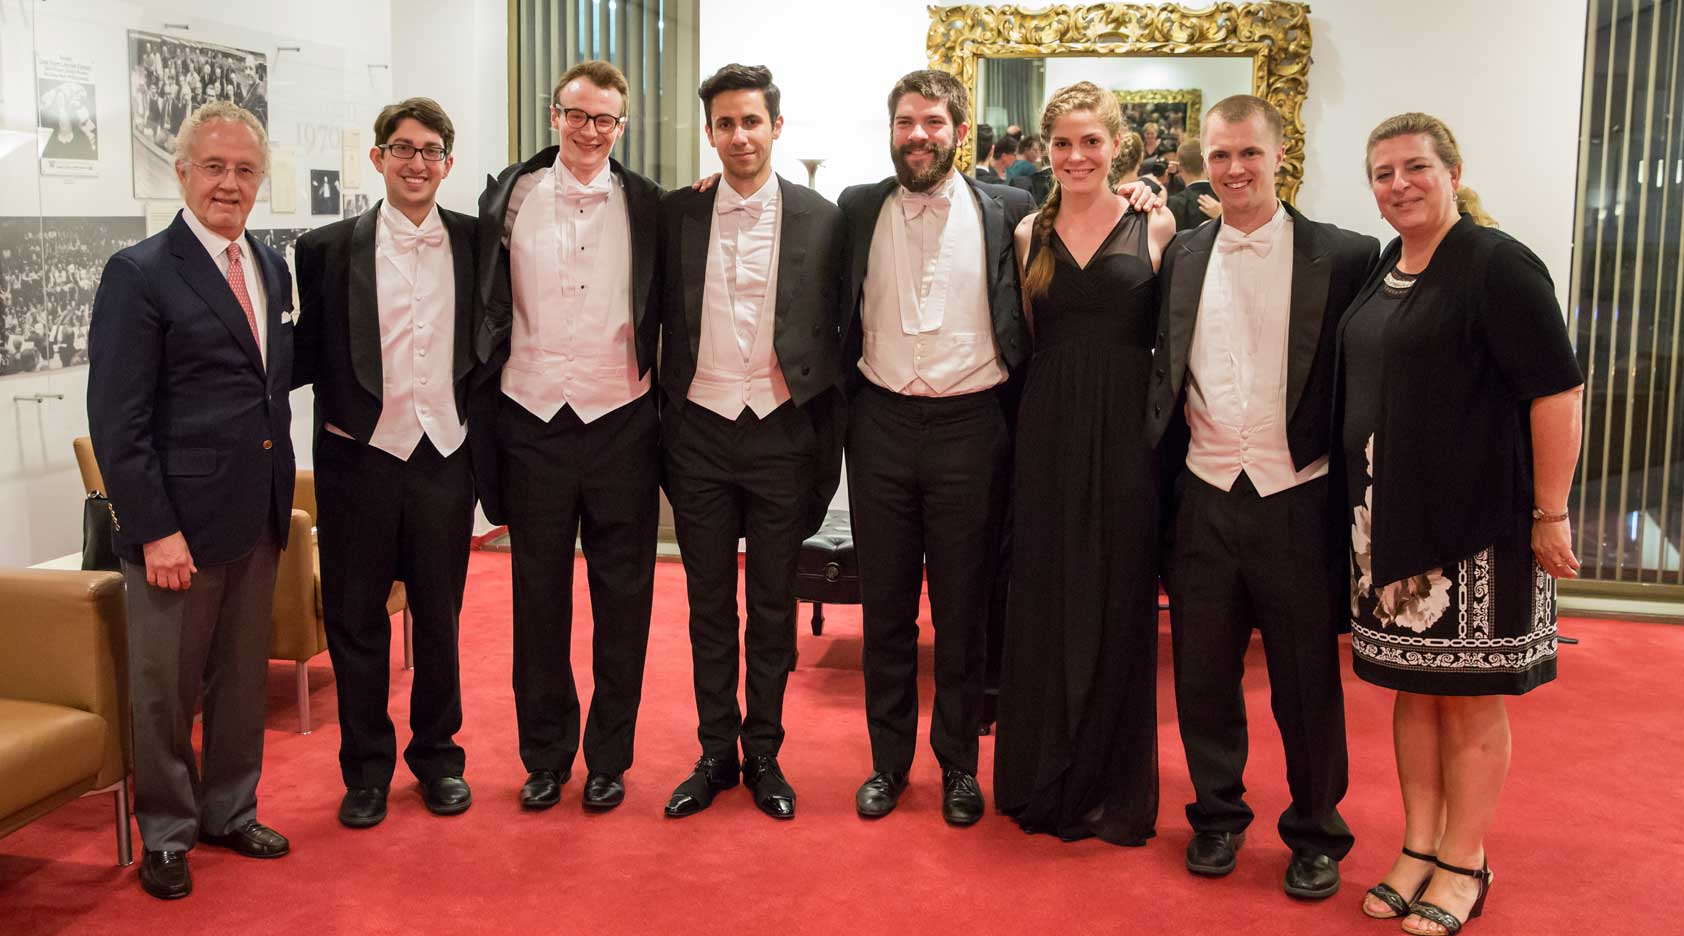 shepherd school of music fellows conclude immersion with new york